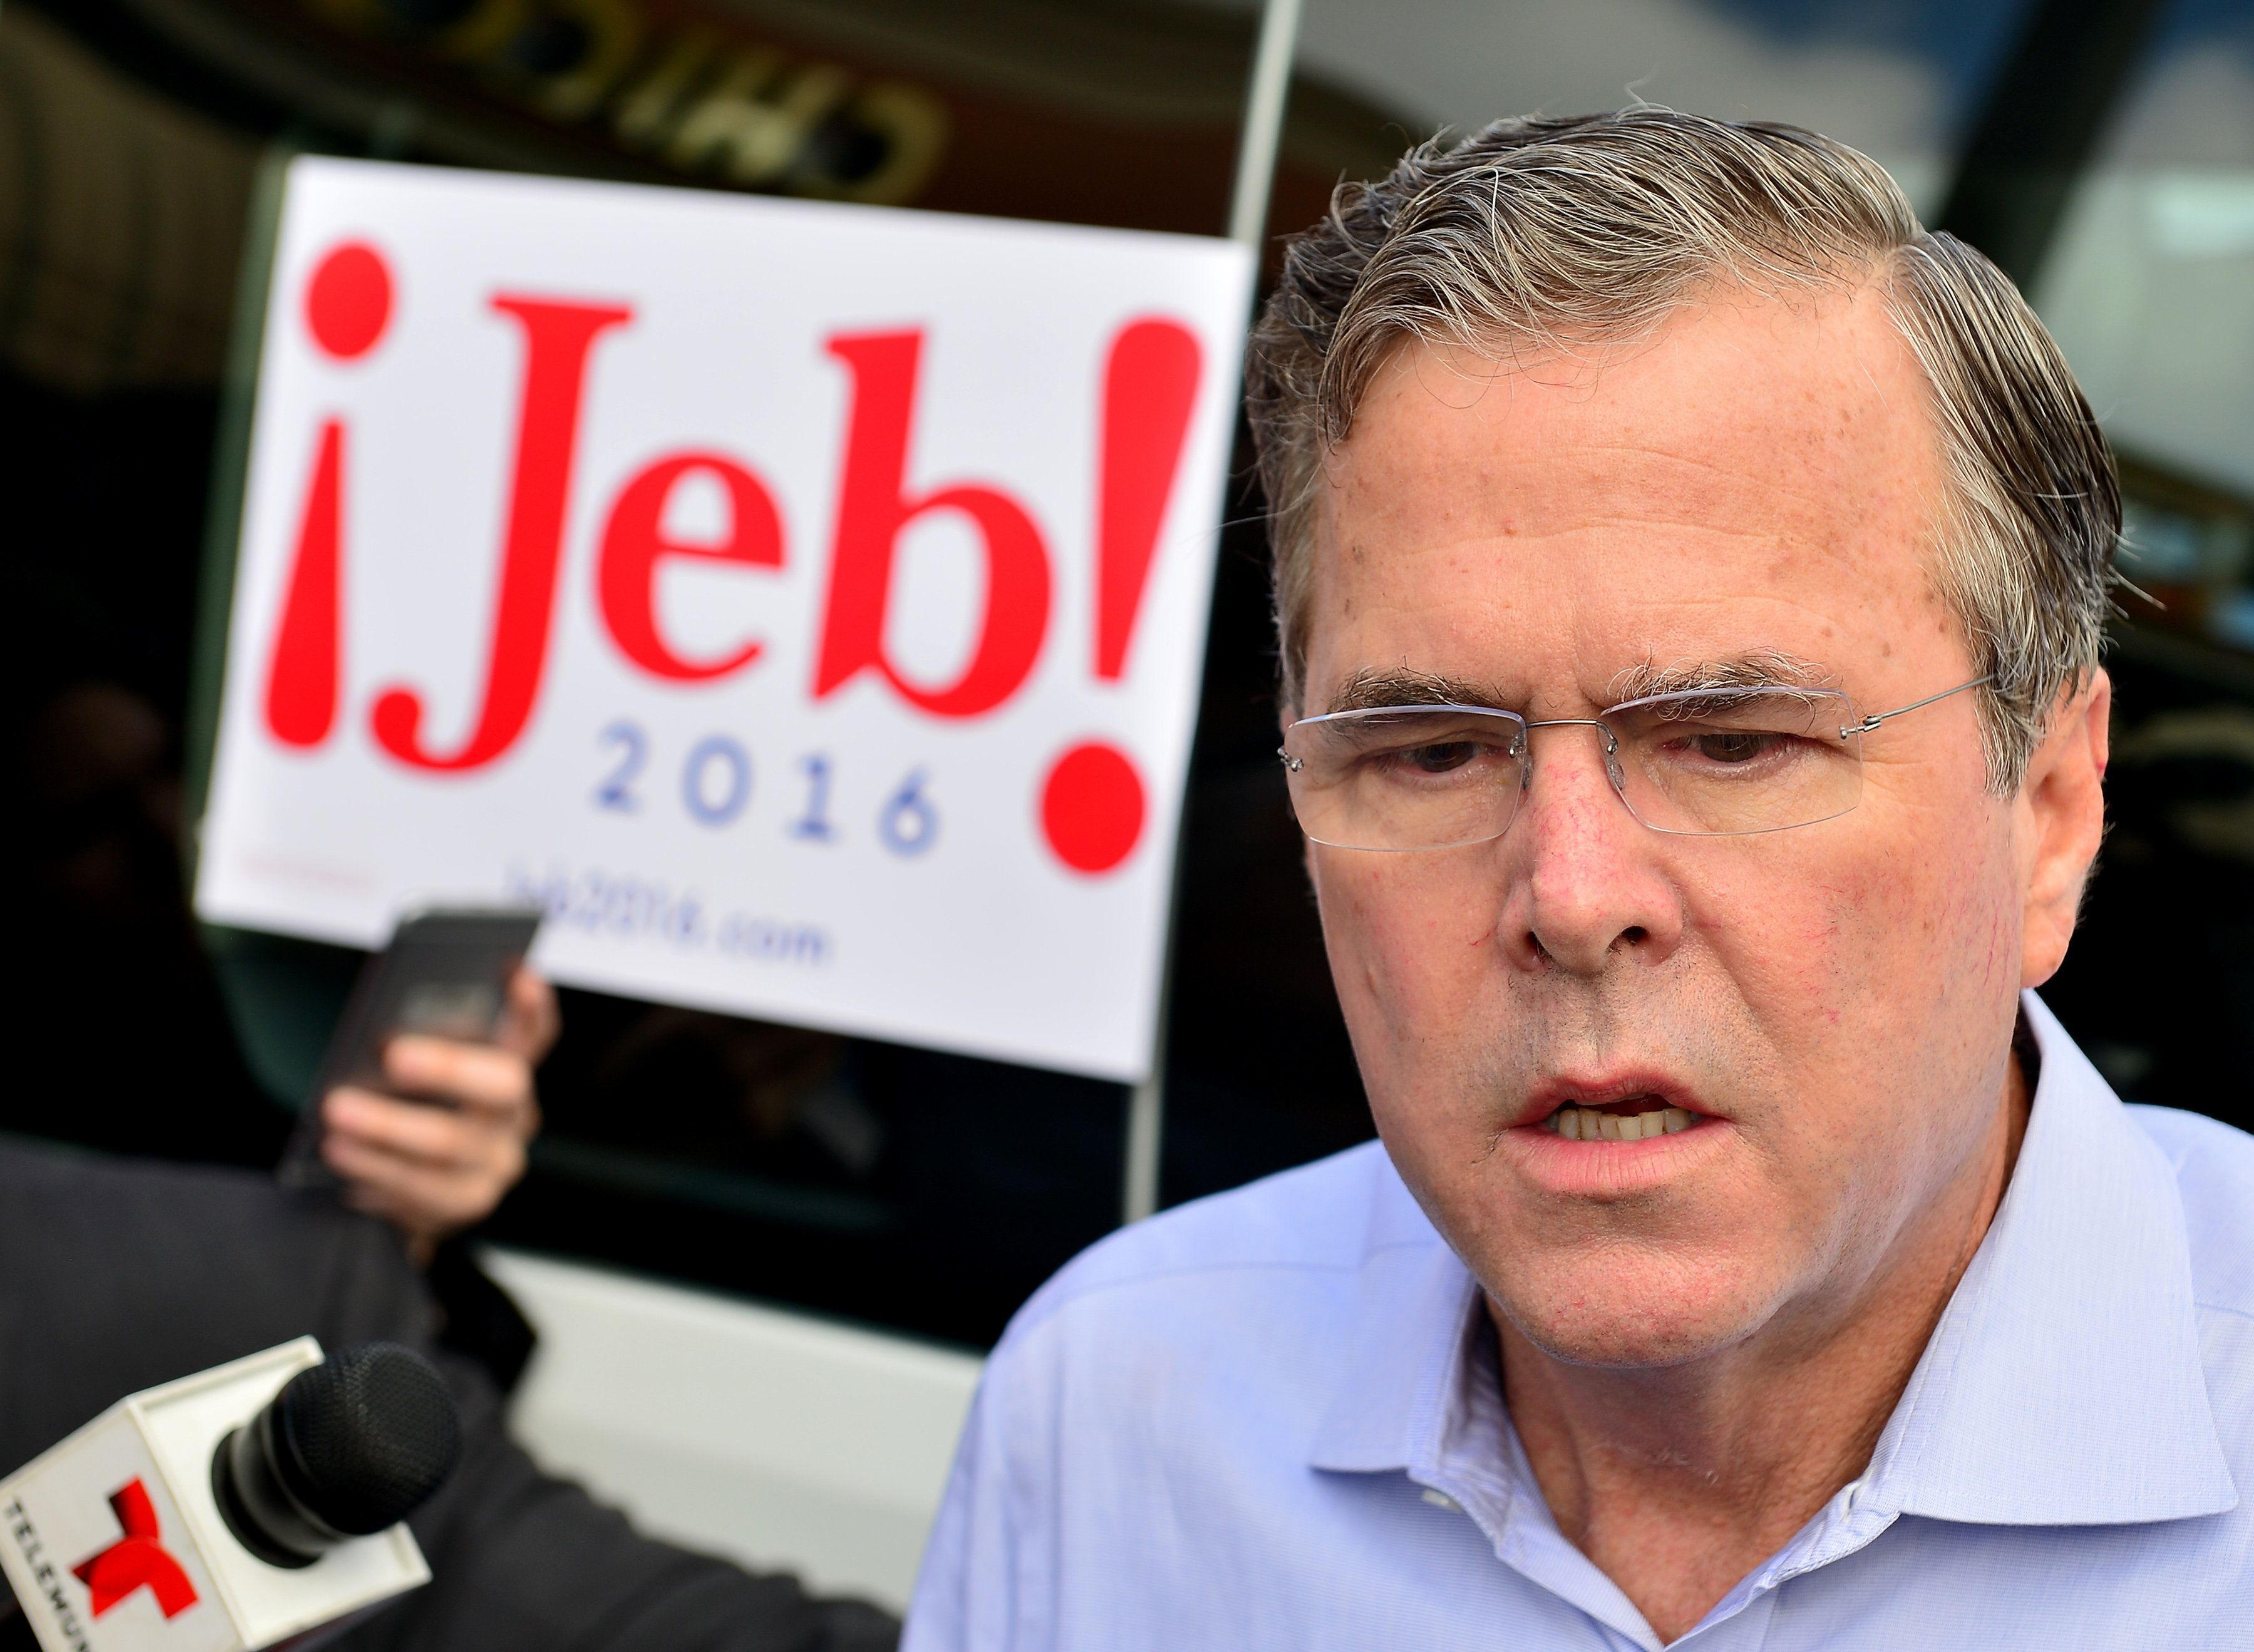 MIAMI, FL - DECEMBER 28:  Republican presidential candidate and former Florida Governor Jeb Bush holds a meet and greet at Chico's Restaurant on December 28, 2015 in Hialeah, Florida.  (Photo by Johnny Louis/FilmMagic)